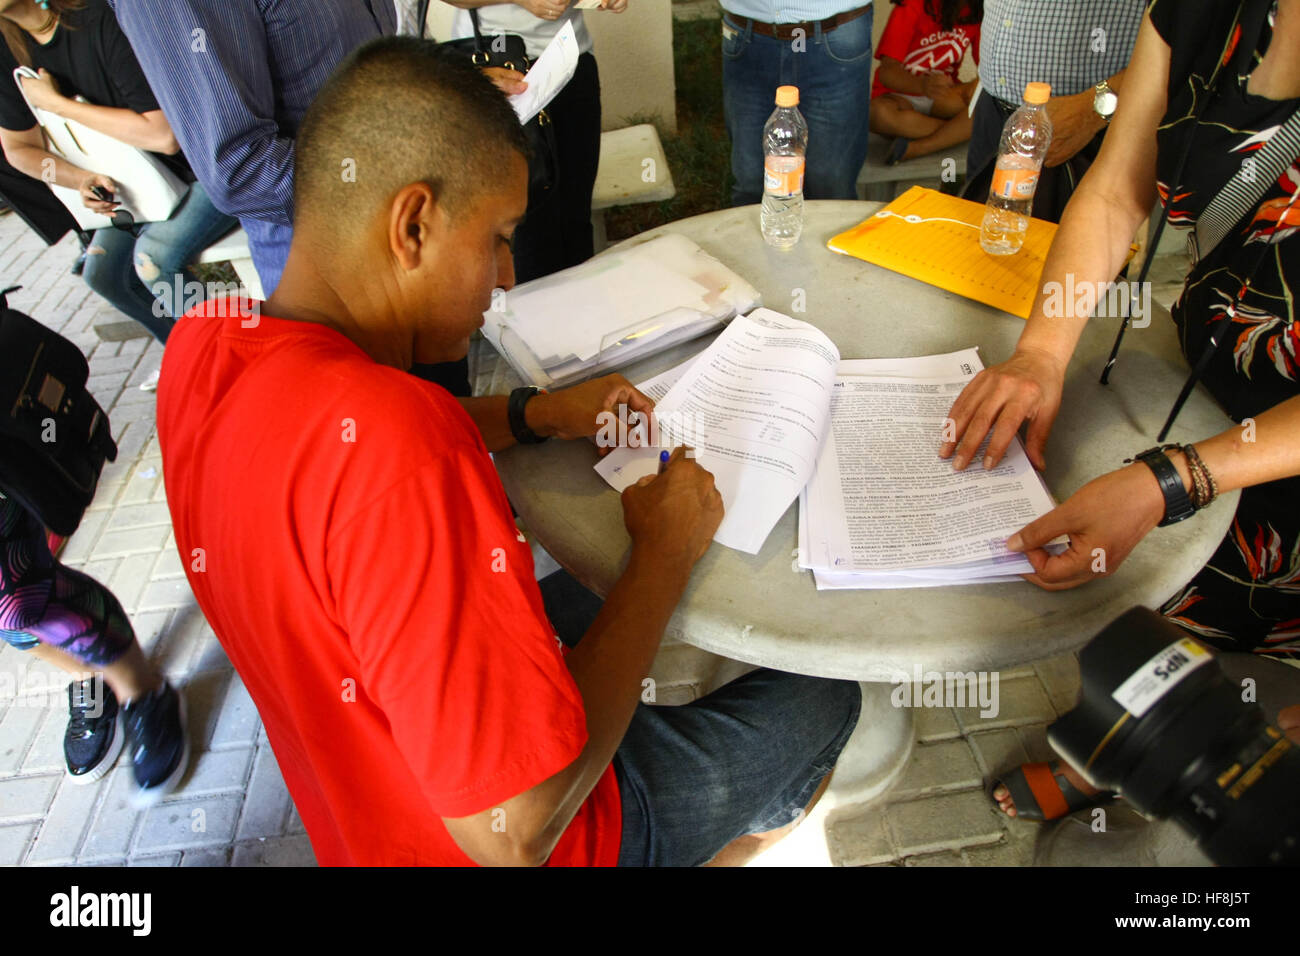 SÃO PAULO, SP - 29.12.2016: ENTREGA DE APARTAMENTOS DA PRIMEIRA PPP - Pictured resident signs the apartment purchase contract. Governor Geraldo Alckmin delivered on the morning of Thursday (29), at Rua São Caetano in downtown São Paulo, 126 apartments of the first Public-Private Partnership (PPP) in the country housing for low-income families. They attended the event Mayor Fernando Haddad and the mayor elected John Doria. (Photo: Aloisio Mauricio/Fotoarena) Stock Photo